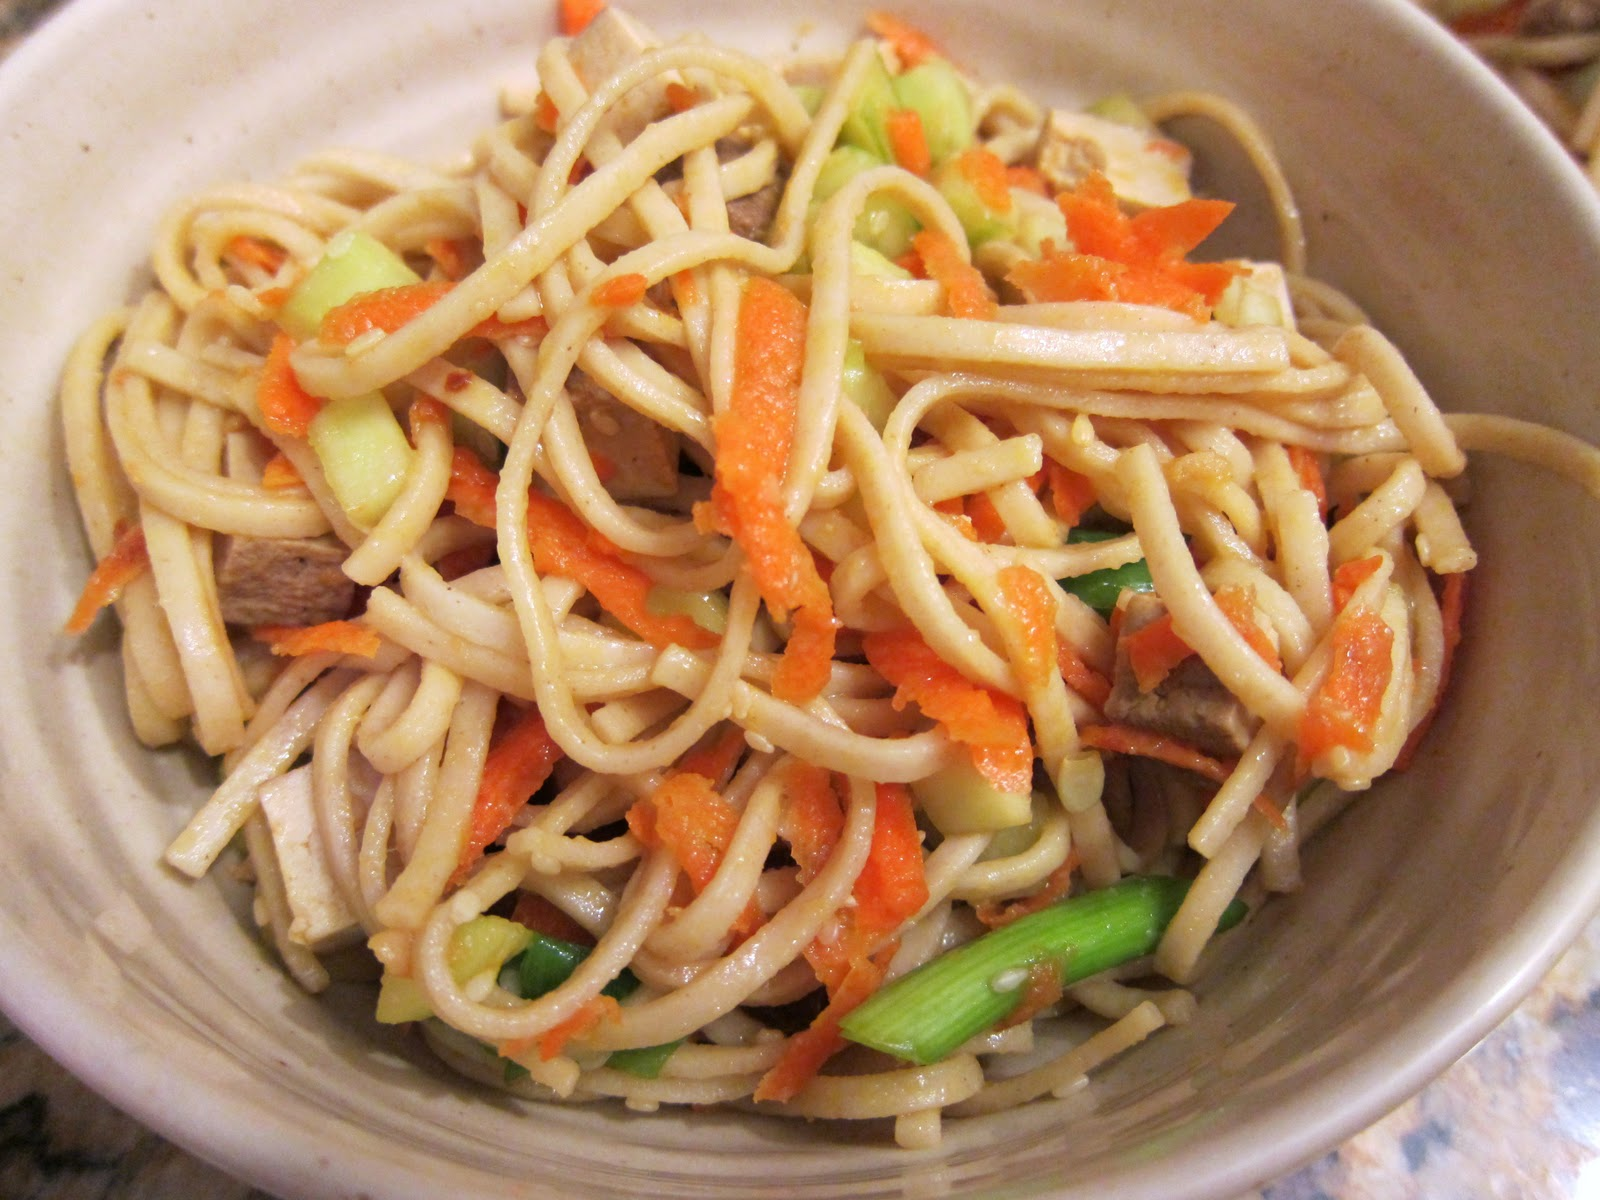 Everyday Vegan: Udon Noodles with Sesame and Tofu